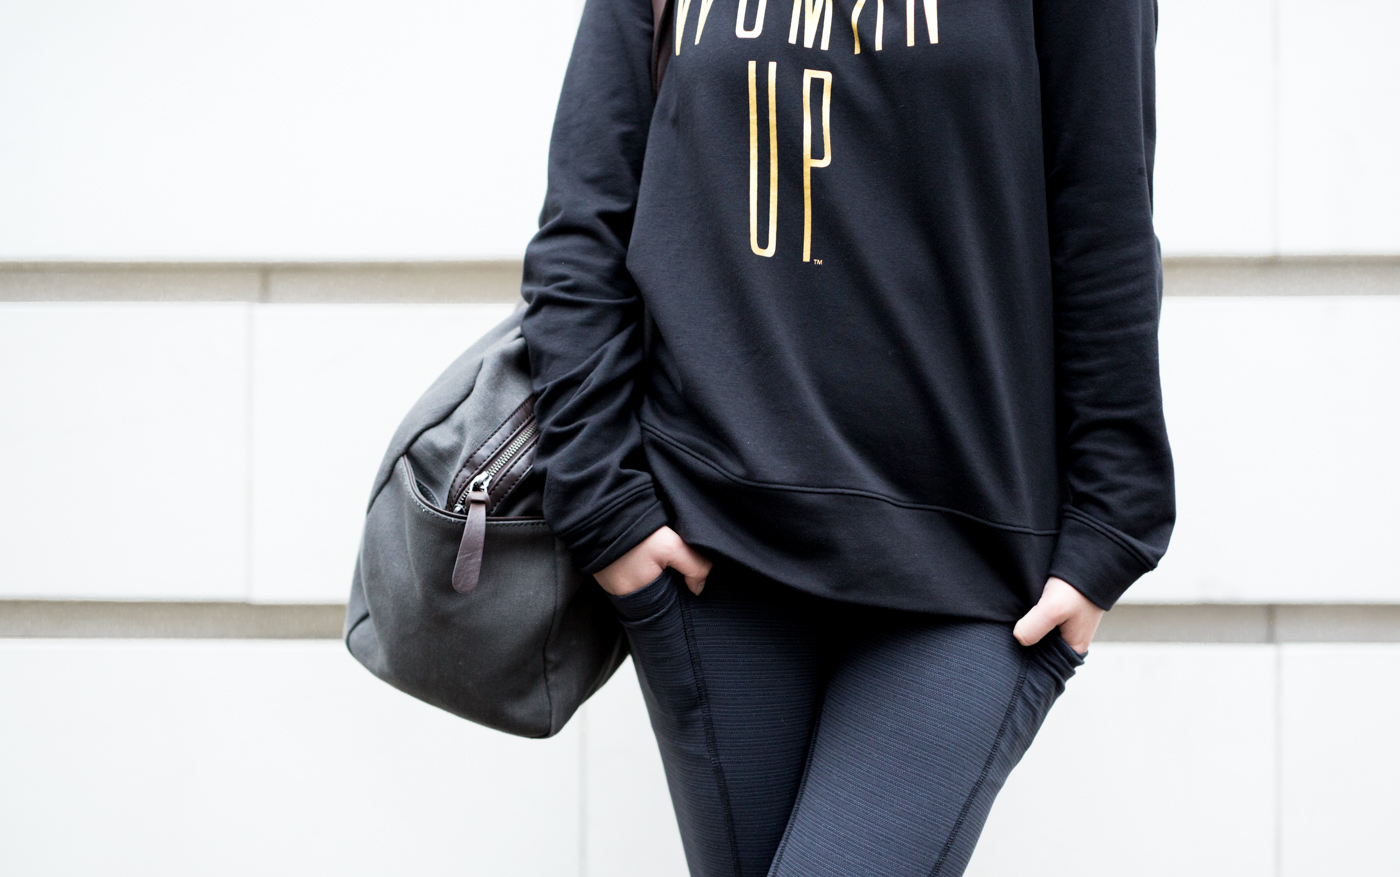 Lucy Power Train Pocket Legging | The Chic Diary